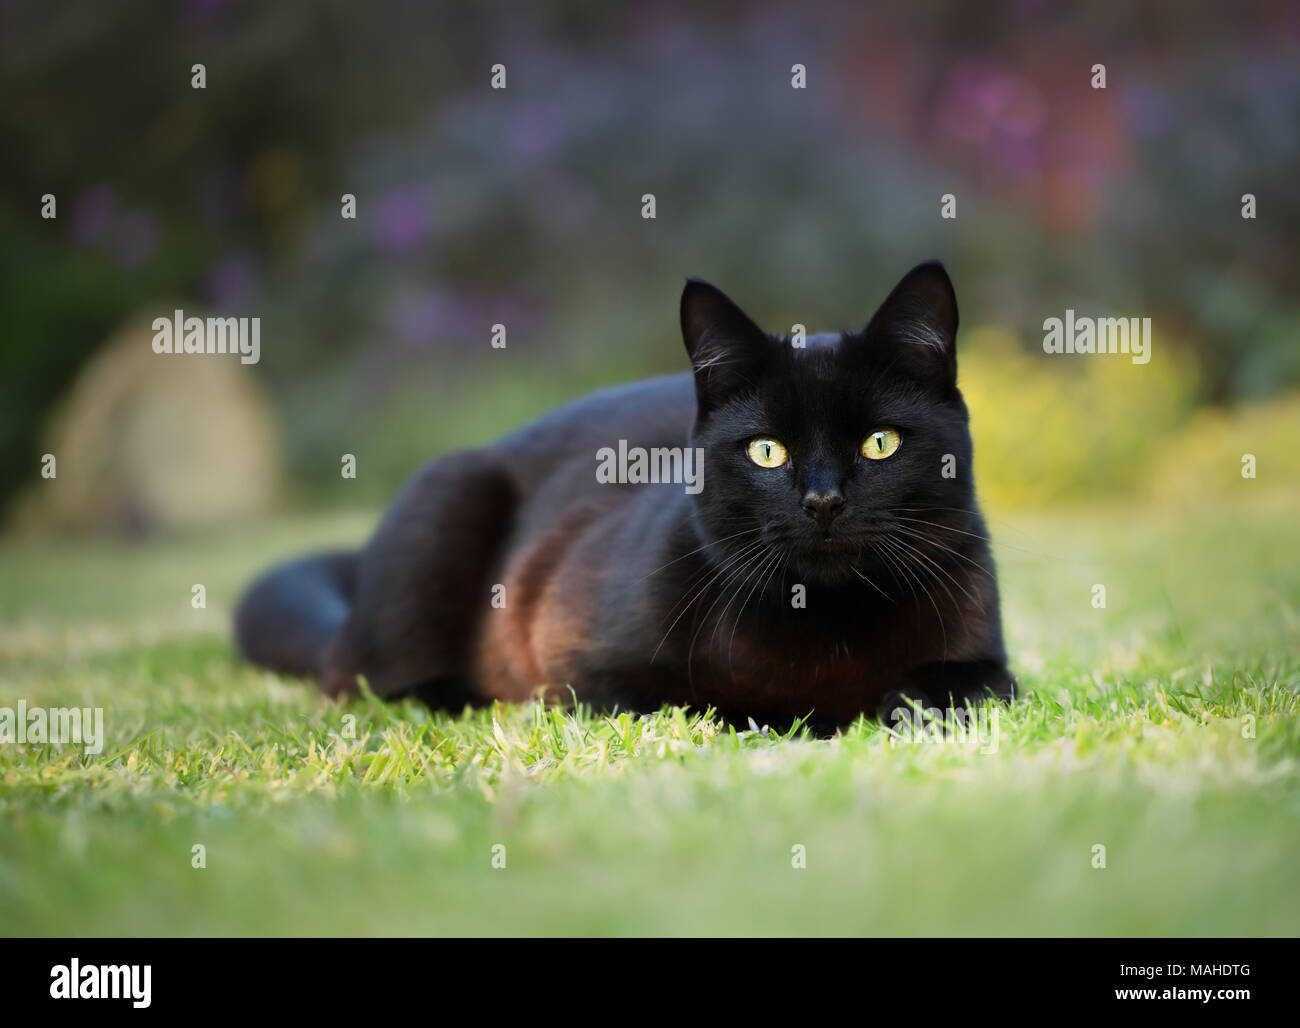 Close up of a black cat lying on the grass in the back garden, UK. - Stock Image